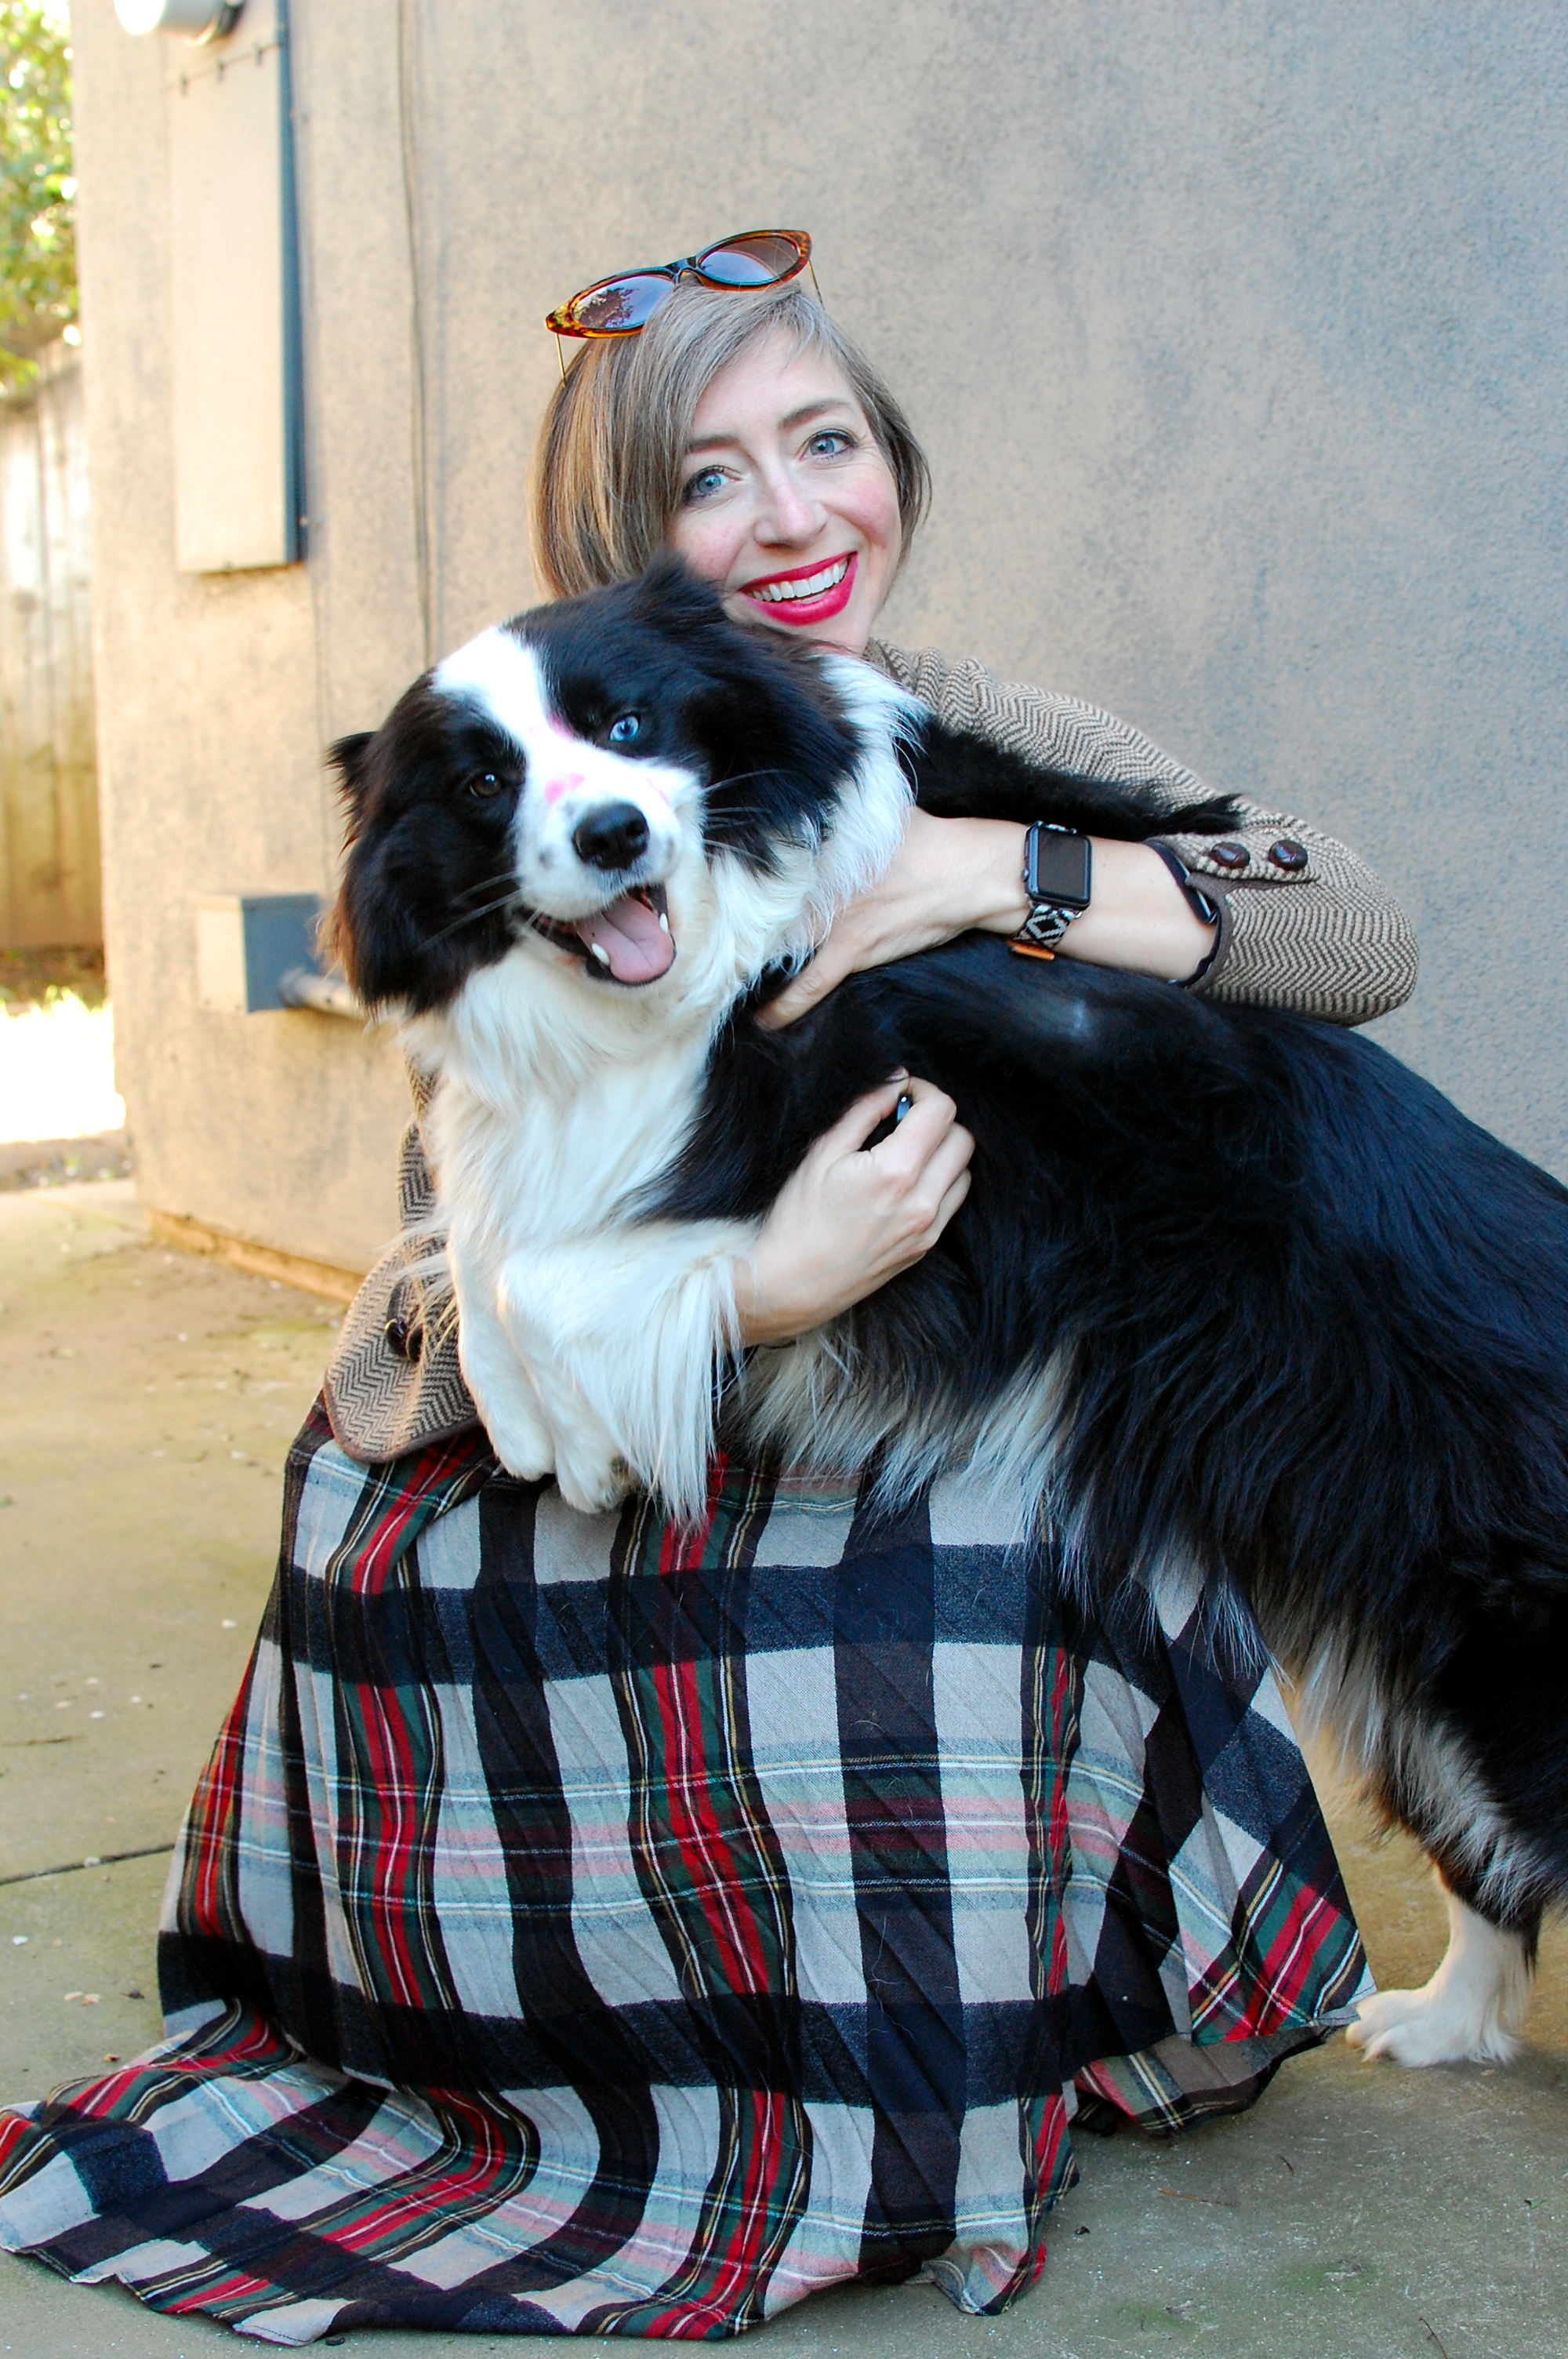 border collie plaid skirt ootd whatiwore2day